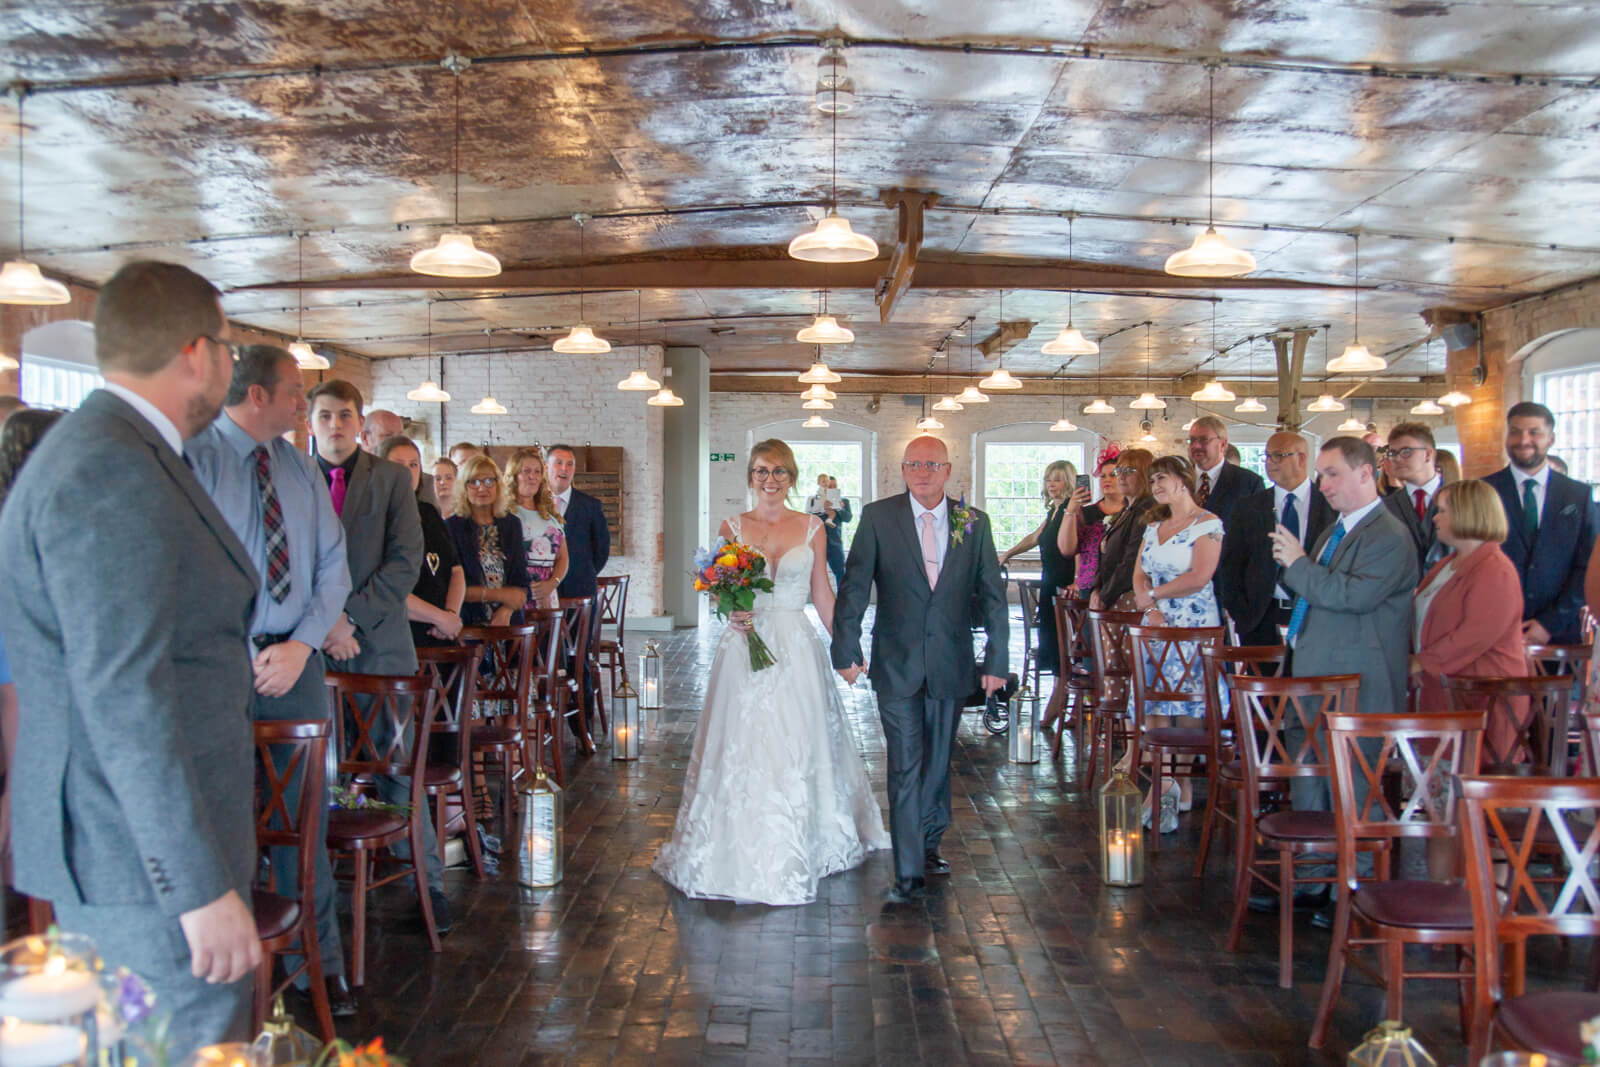 Father of the bride walks his daughter down the aisle at the west mill derby